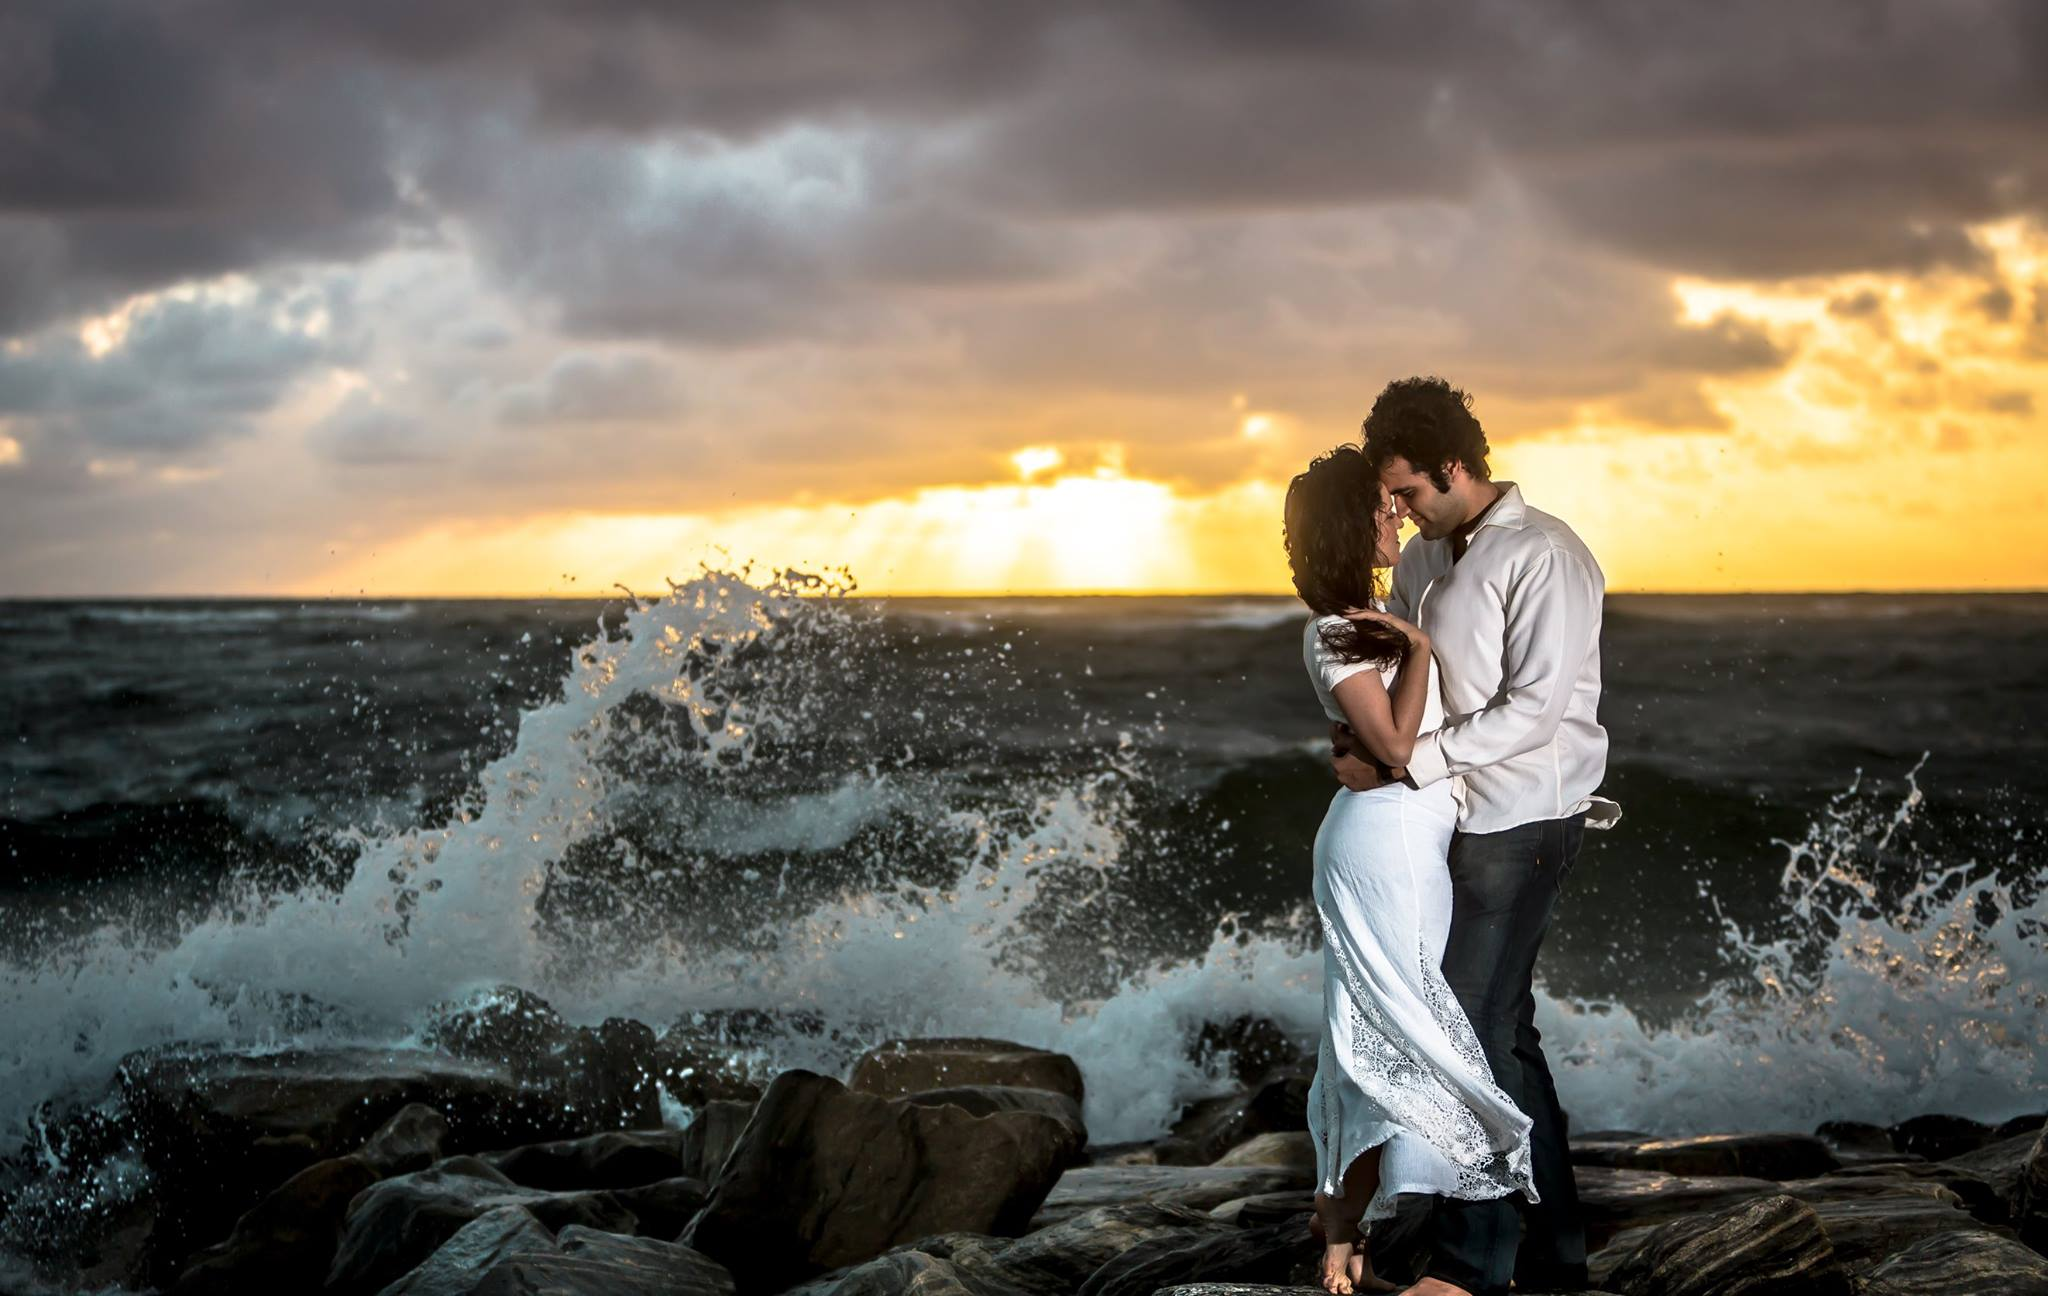 Man and woman in an embrace on the rocks with the waves crashing around them during an engagement photography session in Palm Beach, Florida